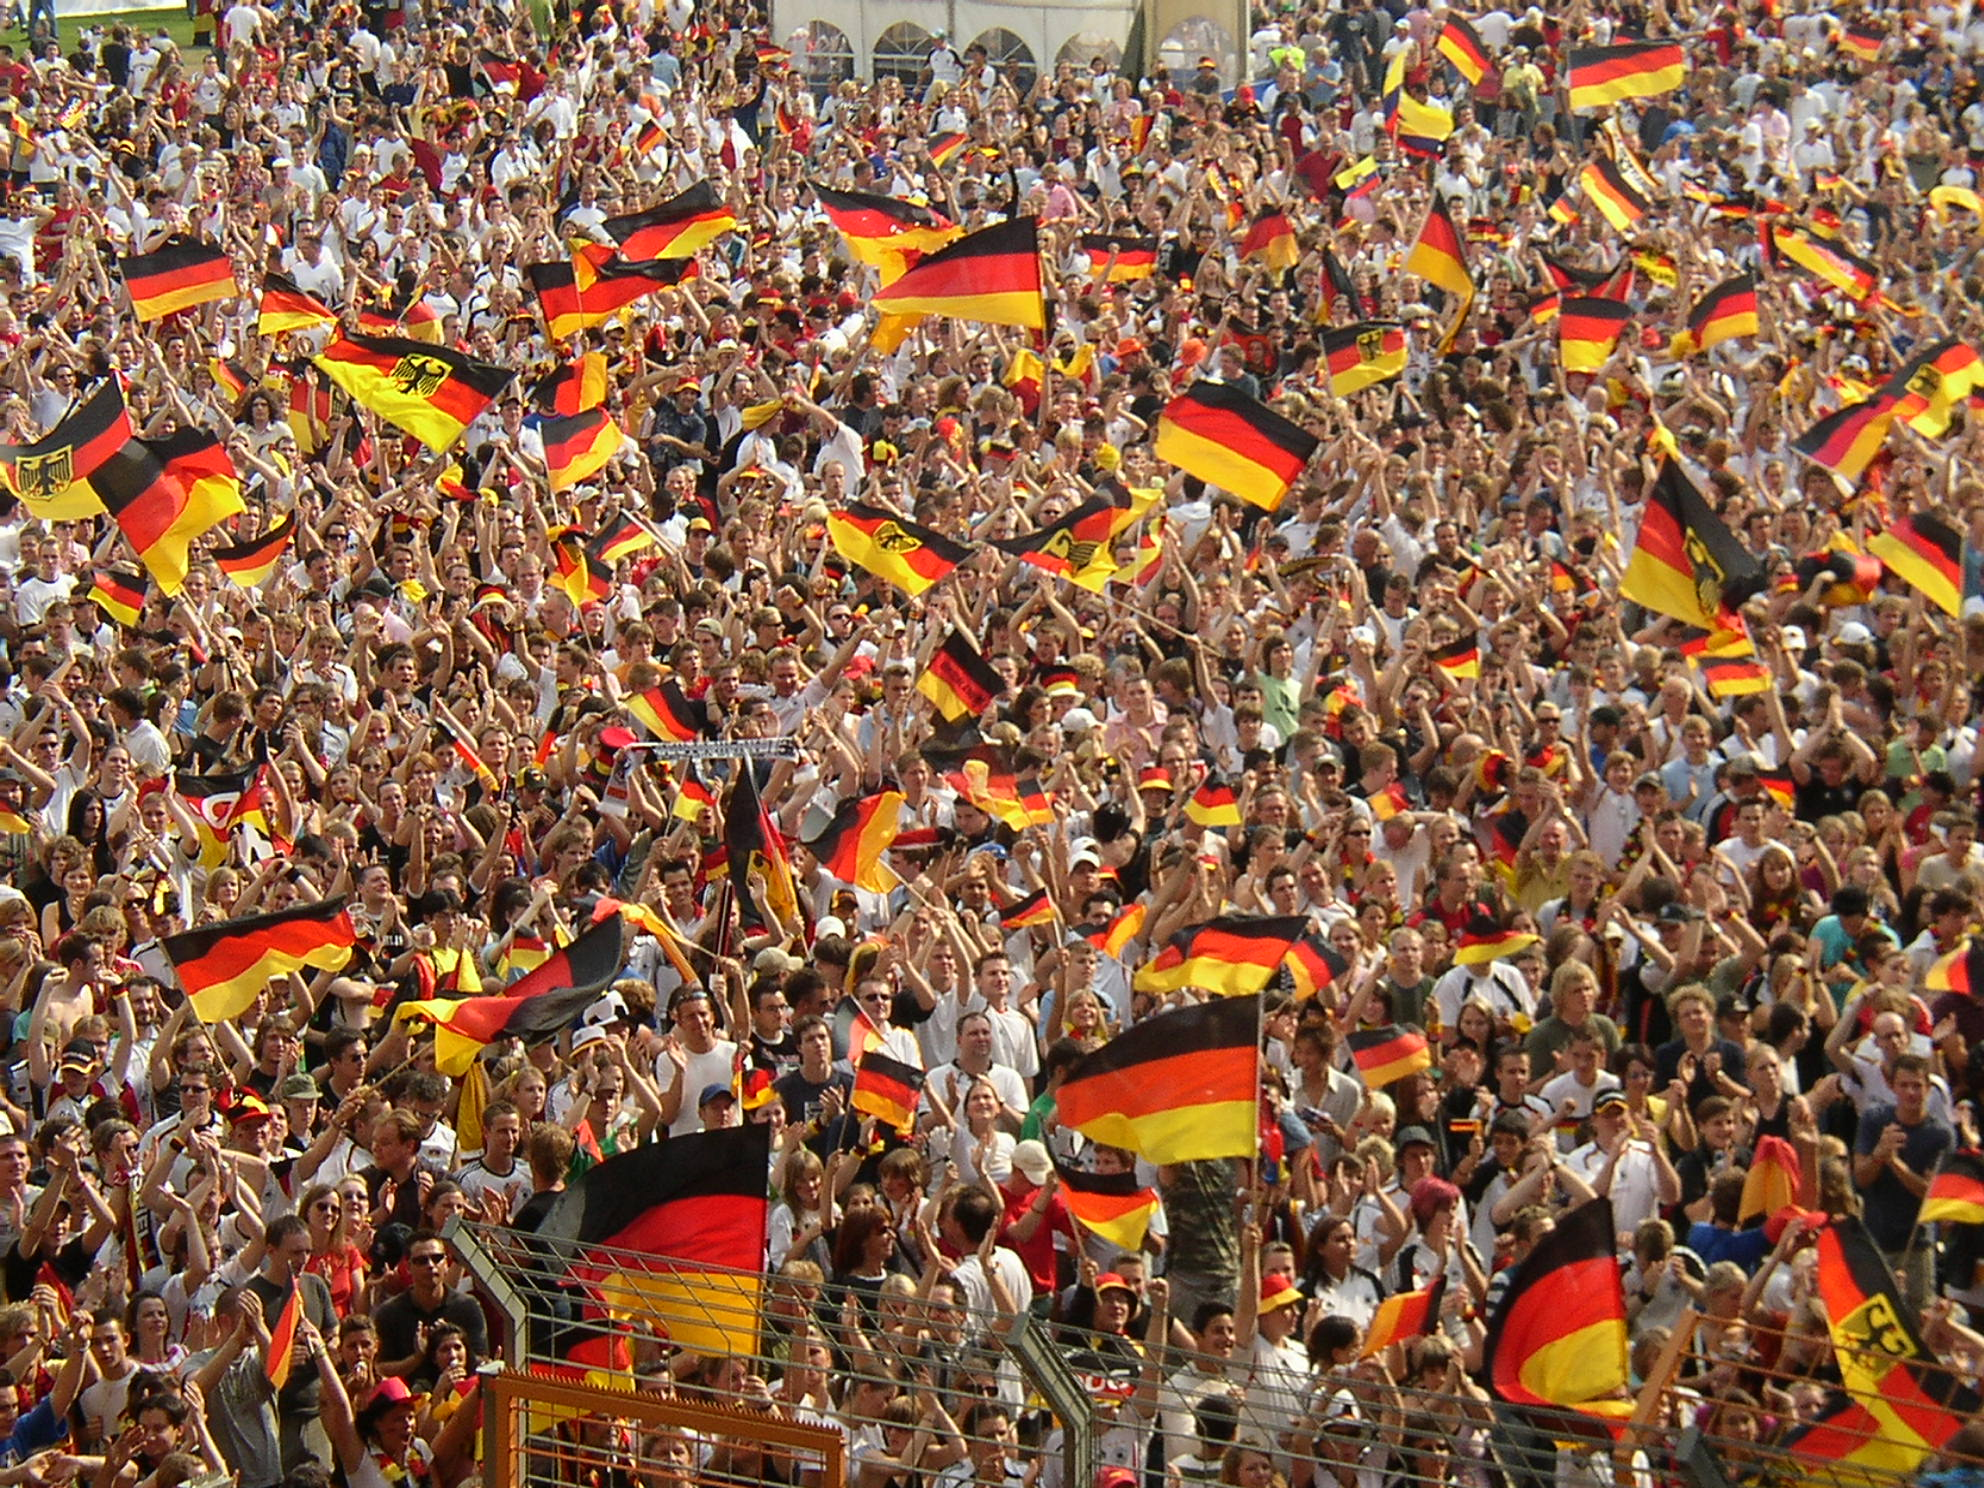 Public Viewing in Berlin